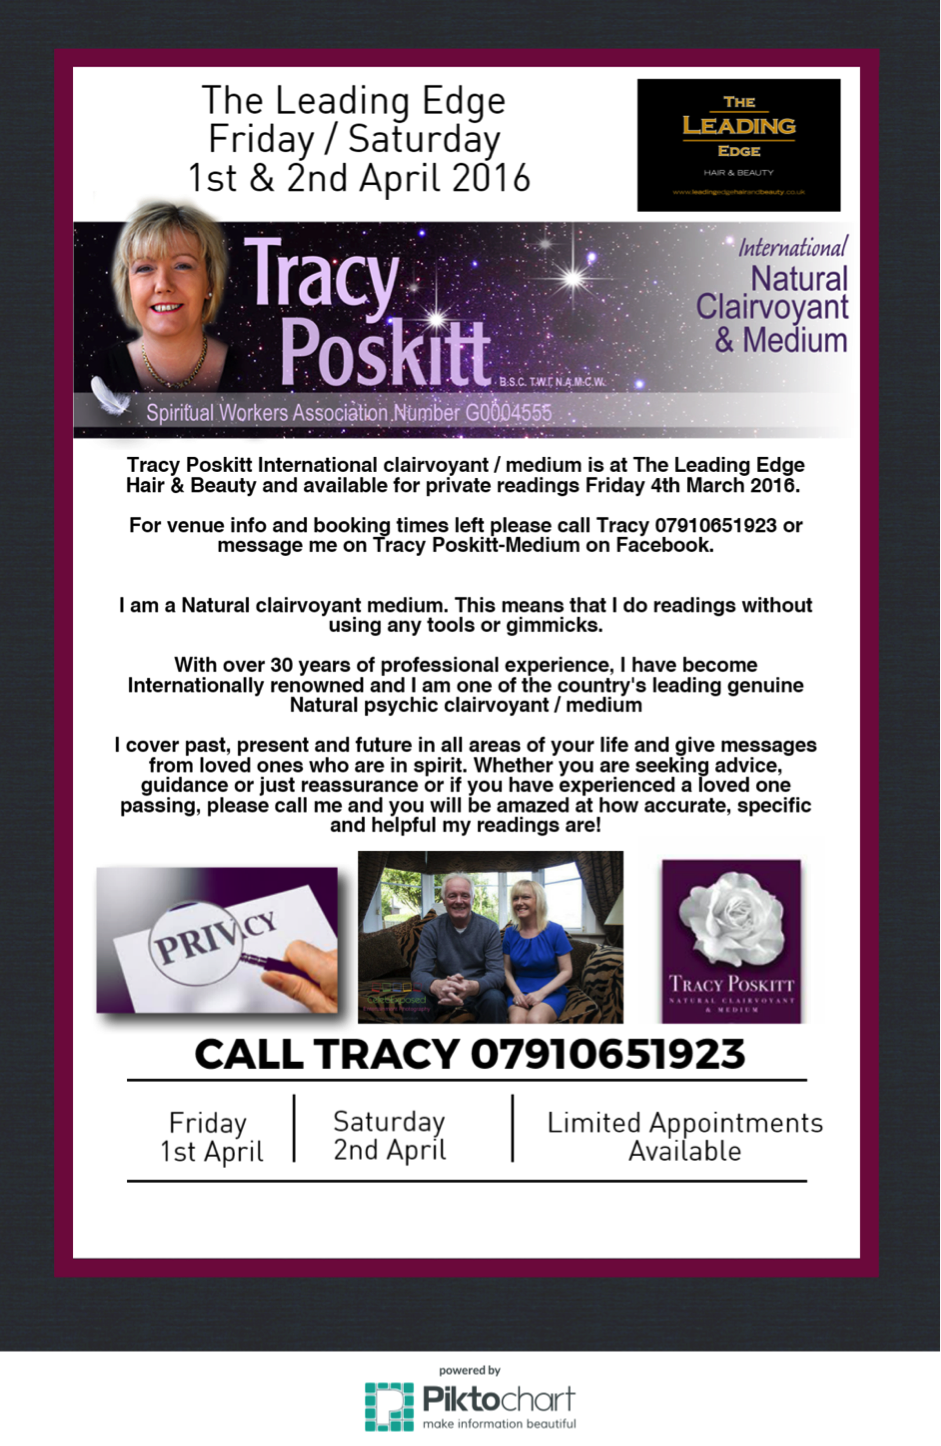 International clairvoyant to visit Leading Edge Hyde